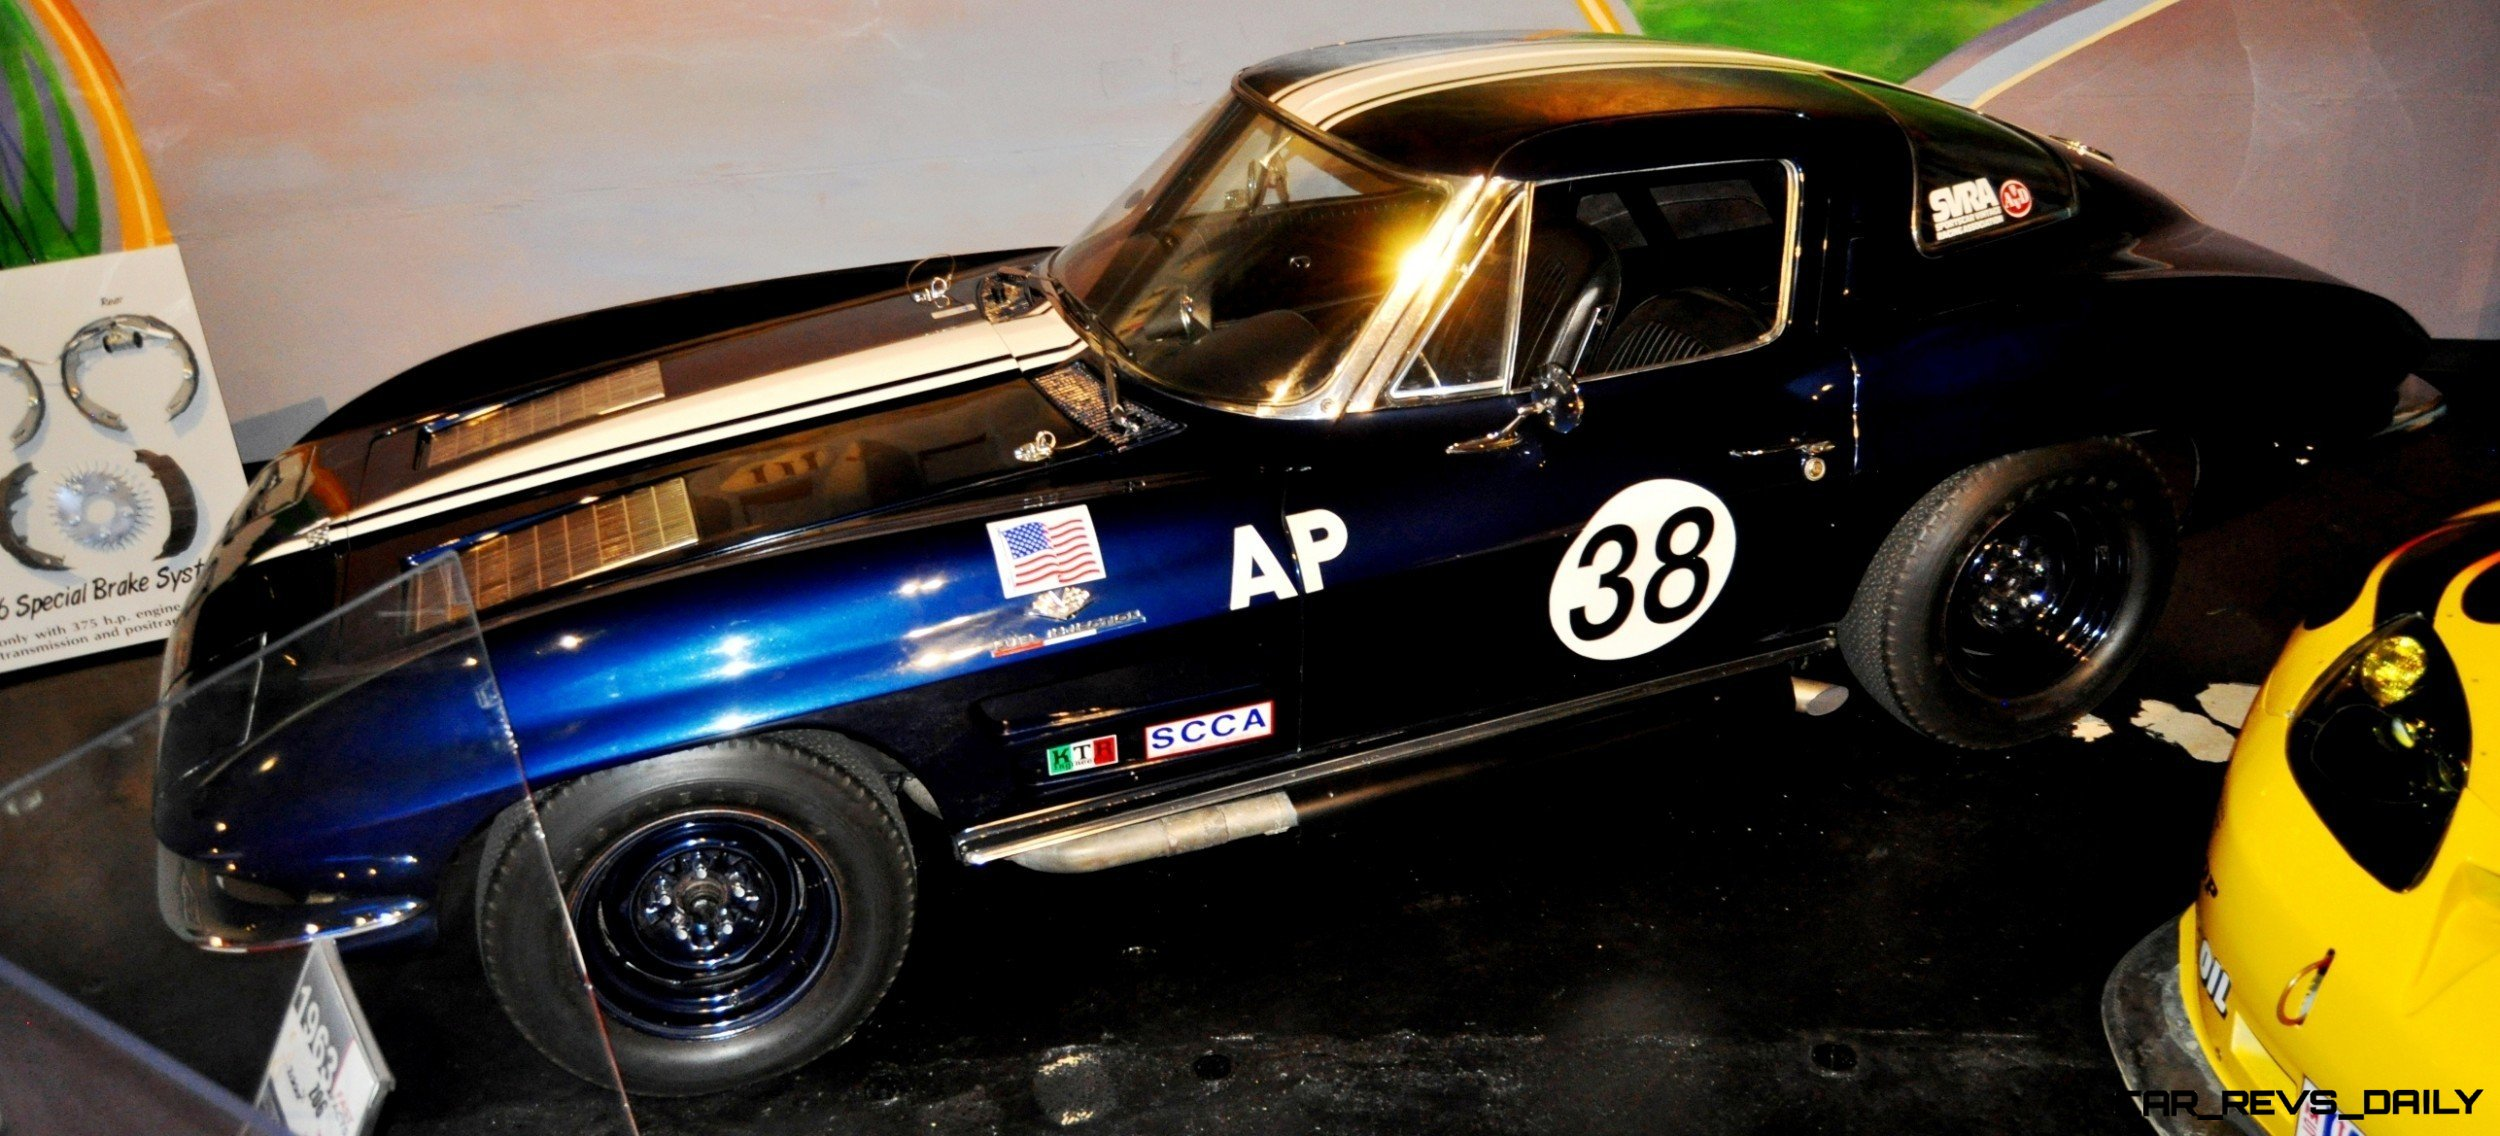 Corvette Museum -- The Racecars! 58 High-Res Photos -- Plus NCM Motorsports Park A High-Speed Dream 45